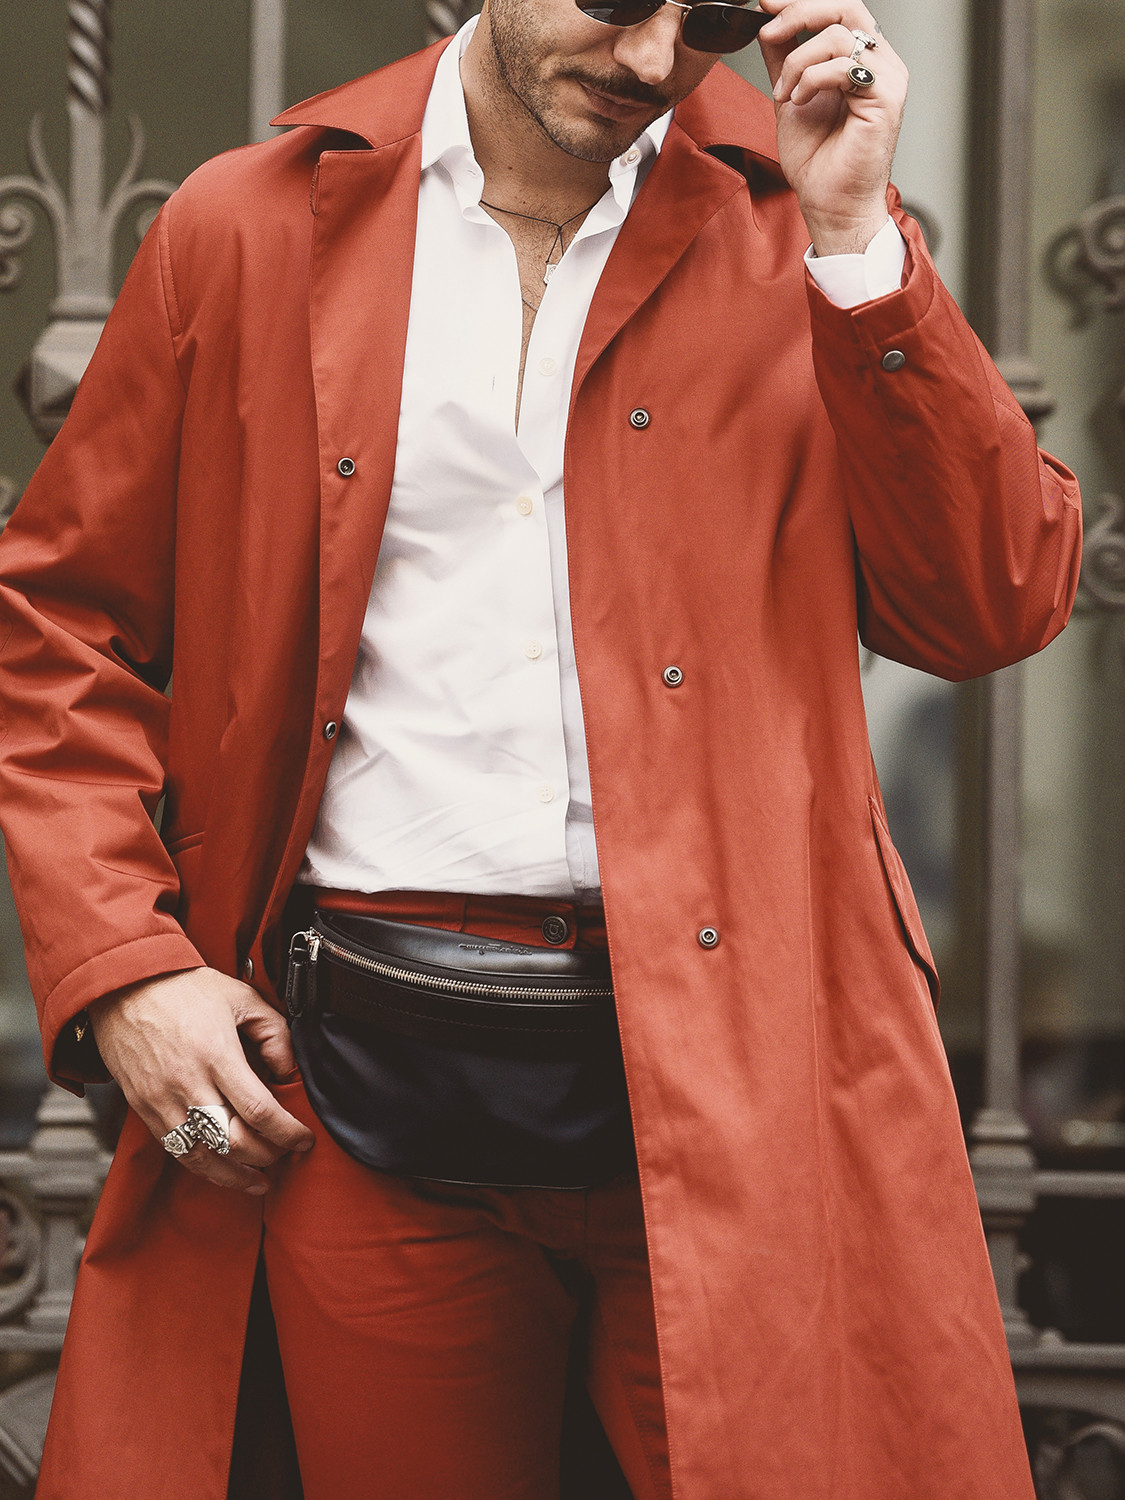 Men's outfit idea for 2021 with red utility jacket, white plain formal shirt, red chinos. Suitable for spring and autumn.